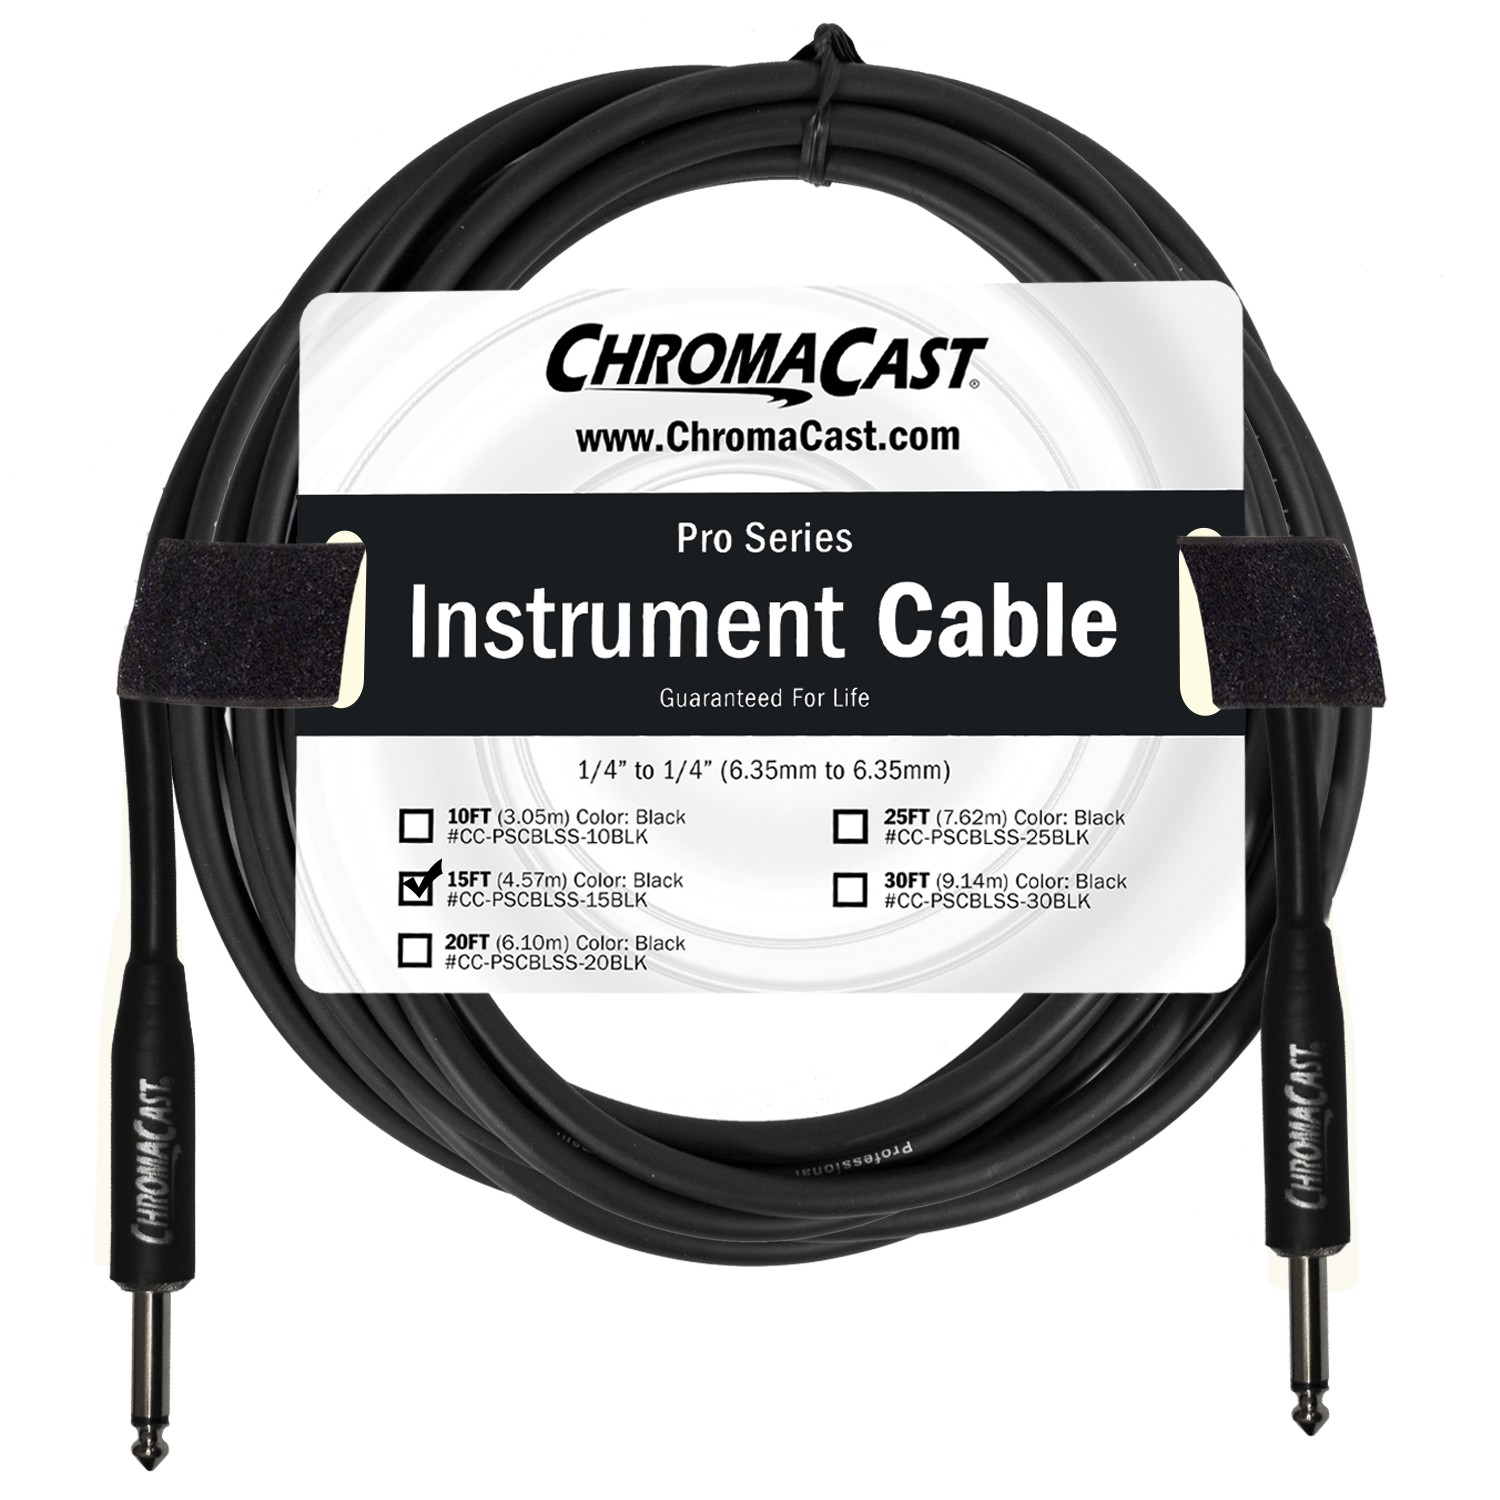 Pro Series Instrument Cable, Black